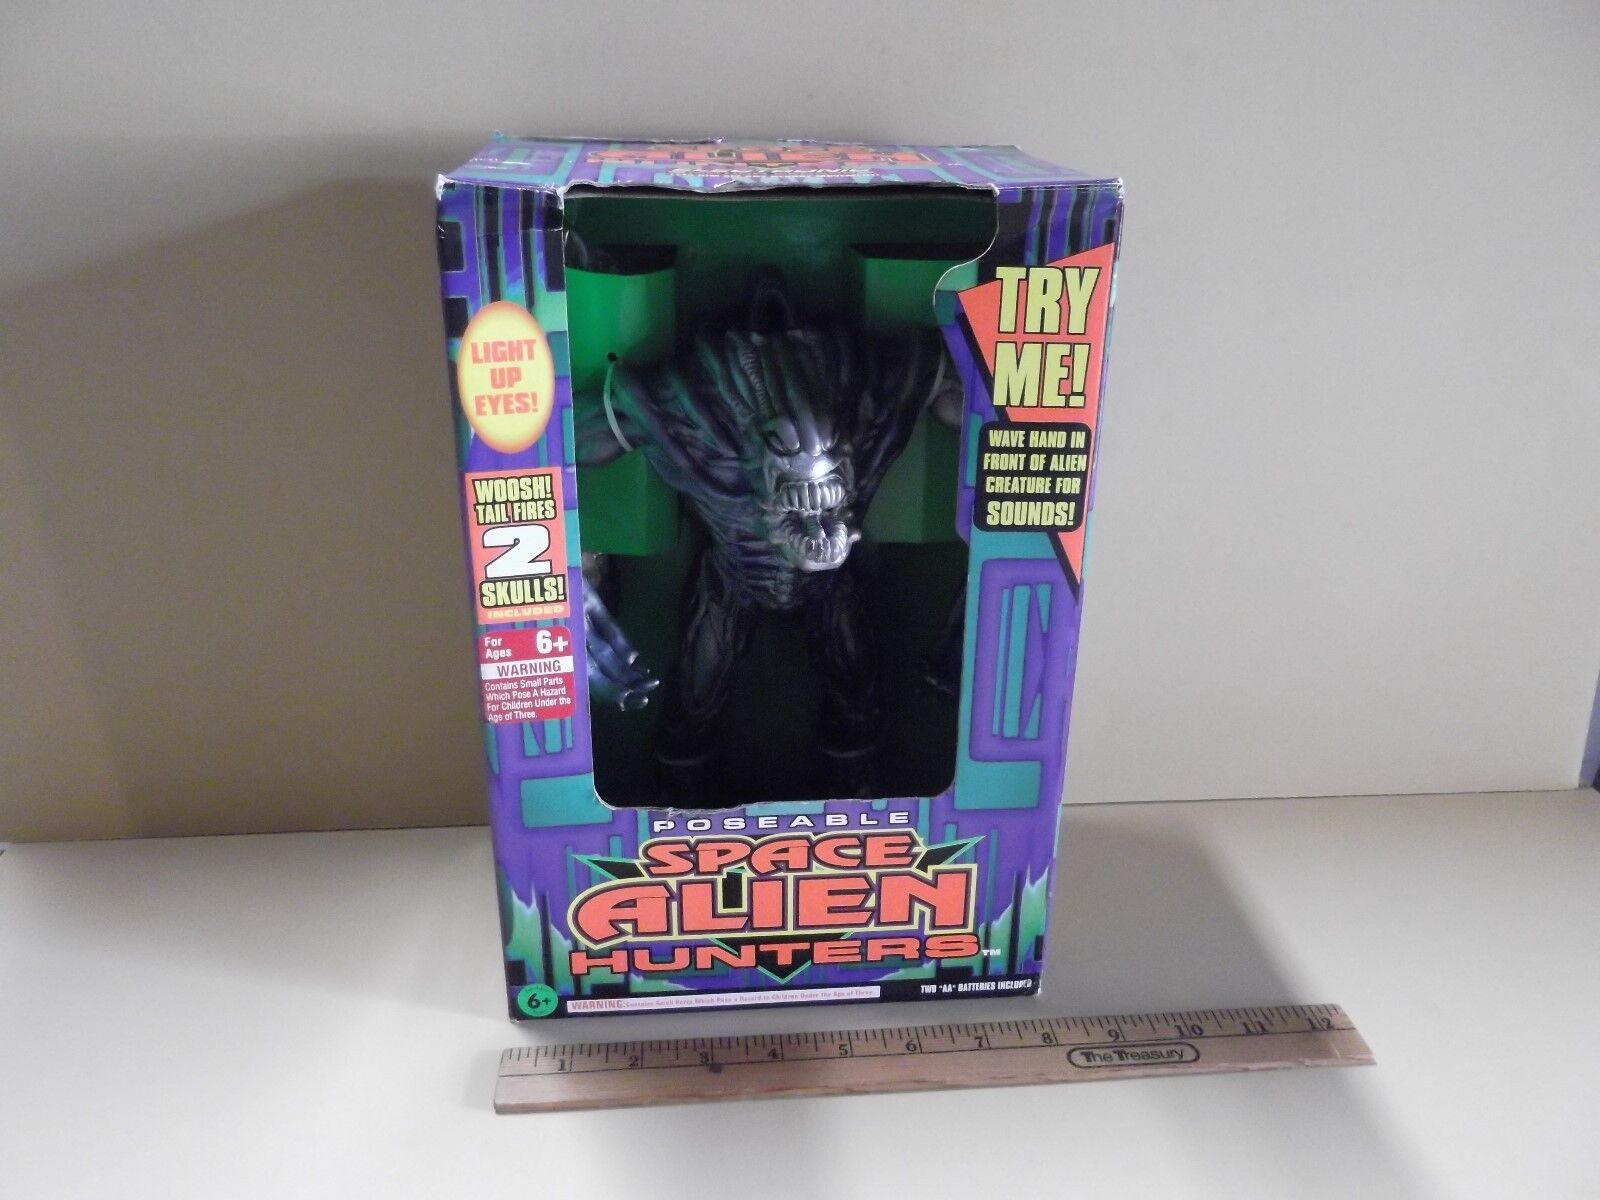 Poseable Space Alien Hunters 12